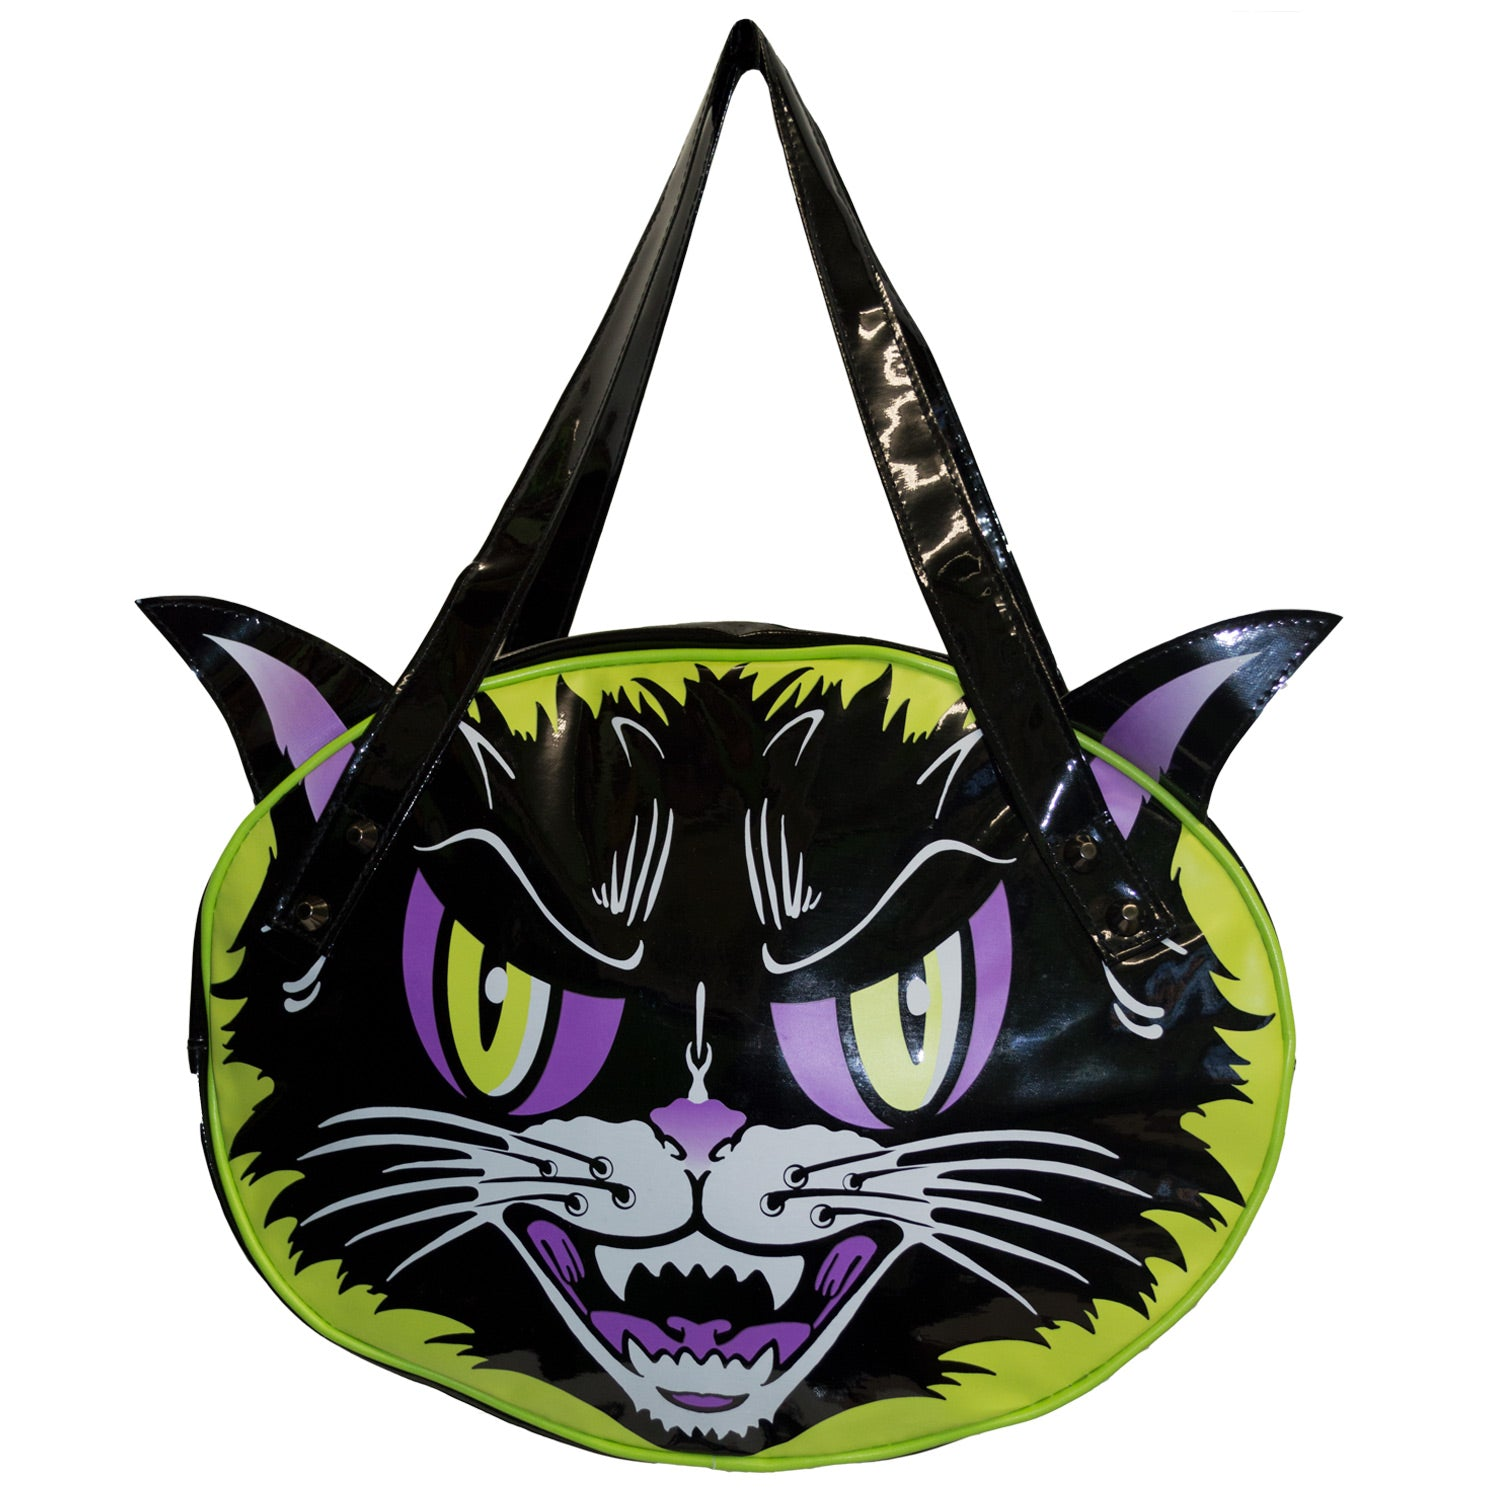 Kattitude Shoulder Bag